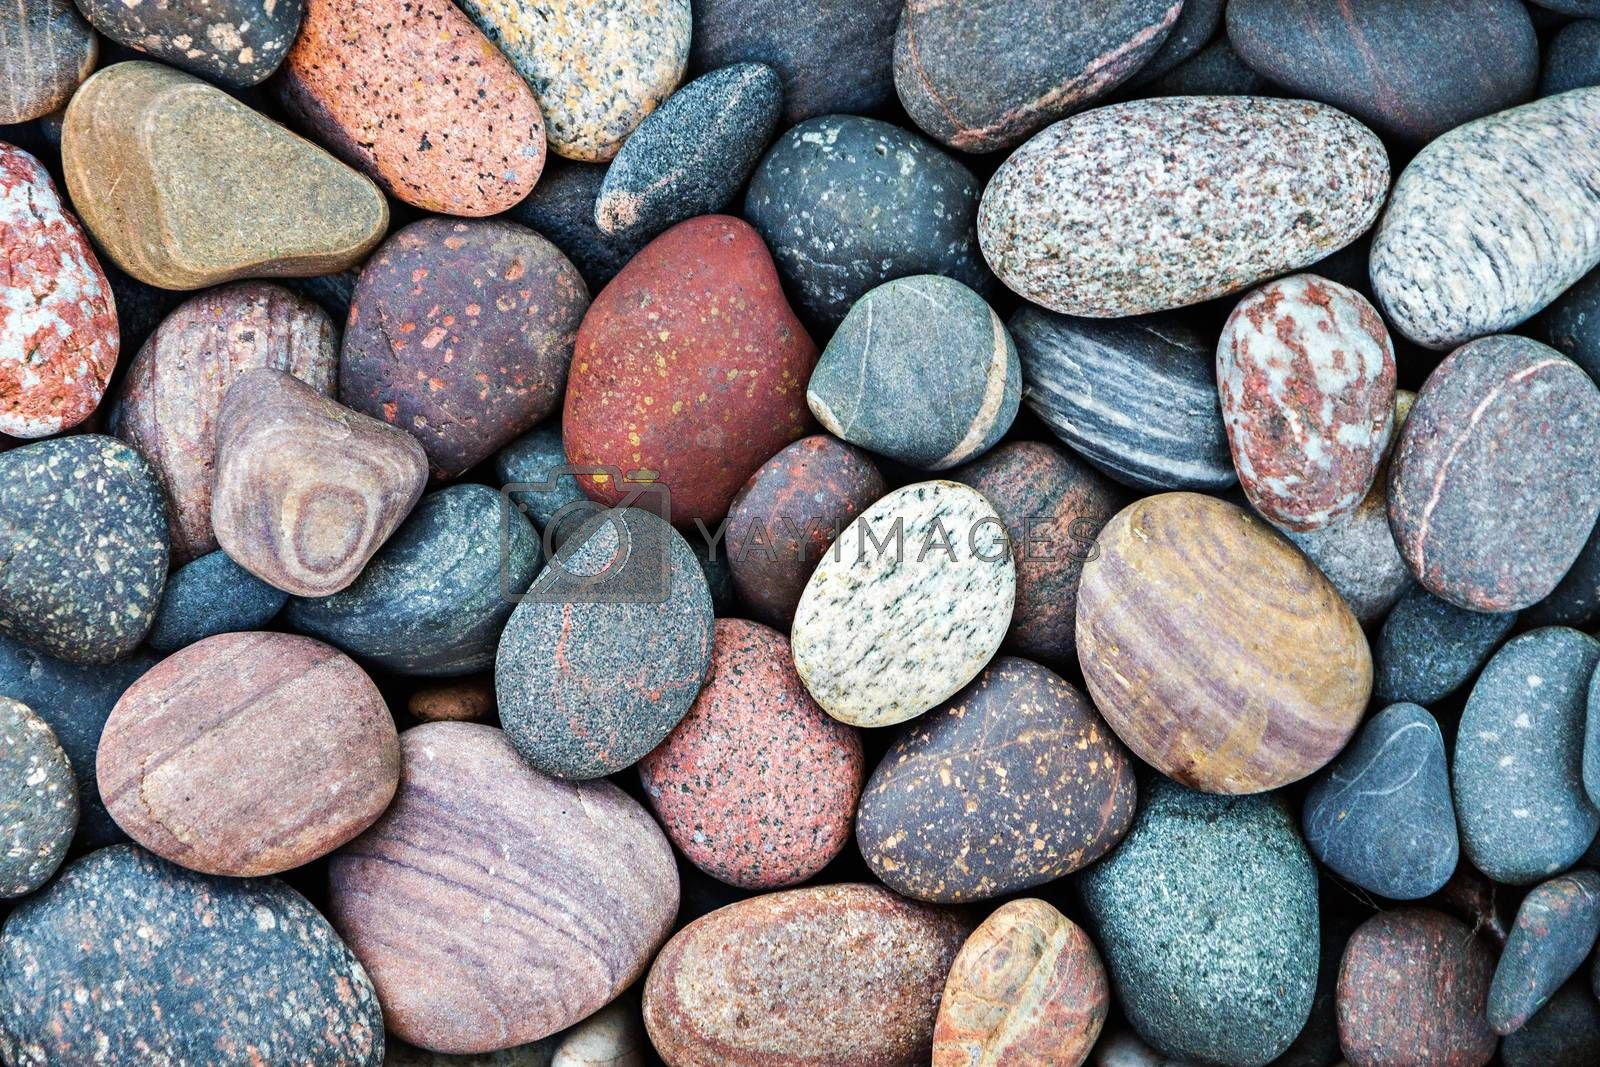 Abstract pebble stones background by Vaidas Bucys